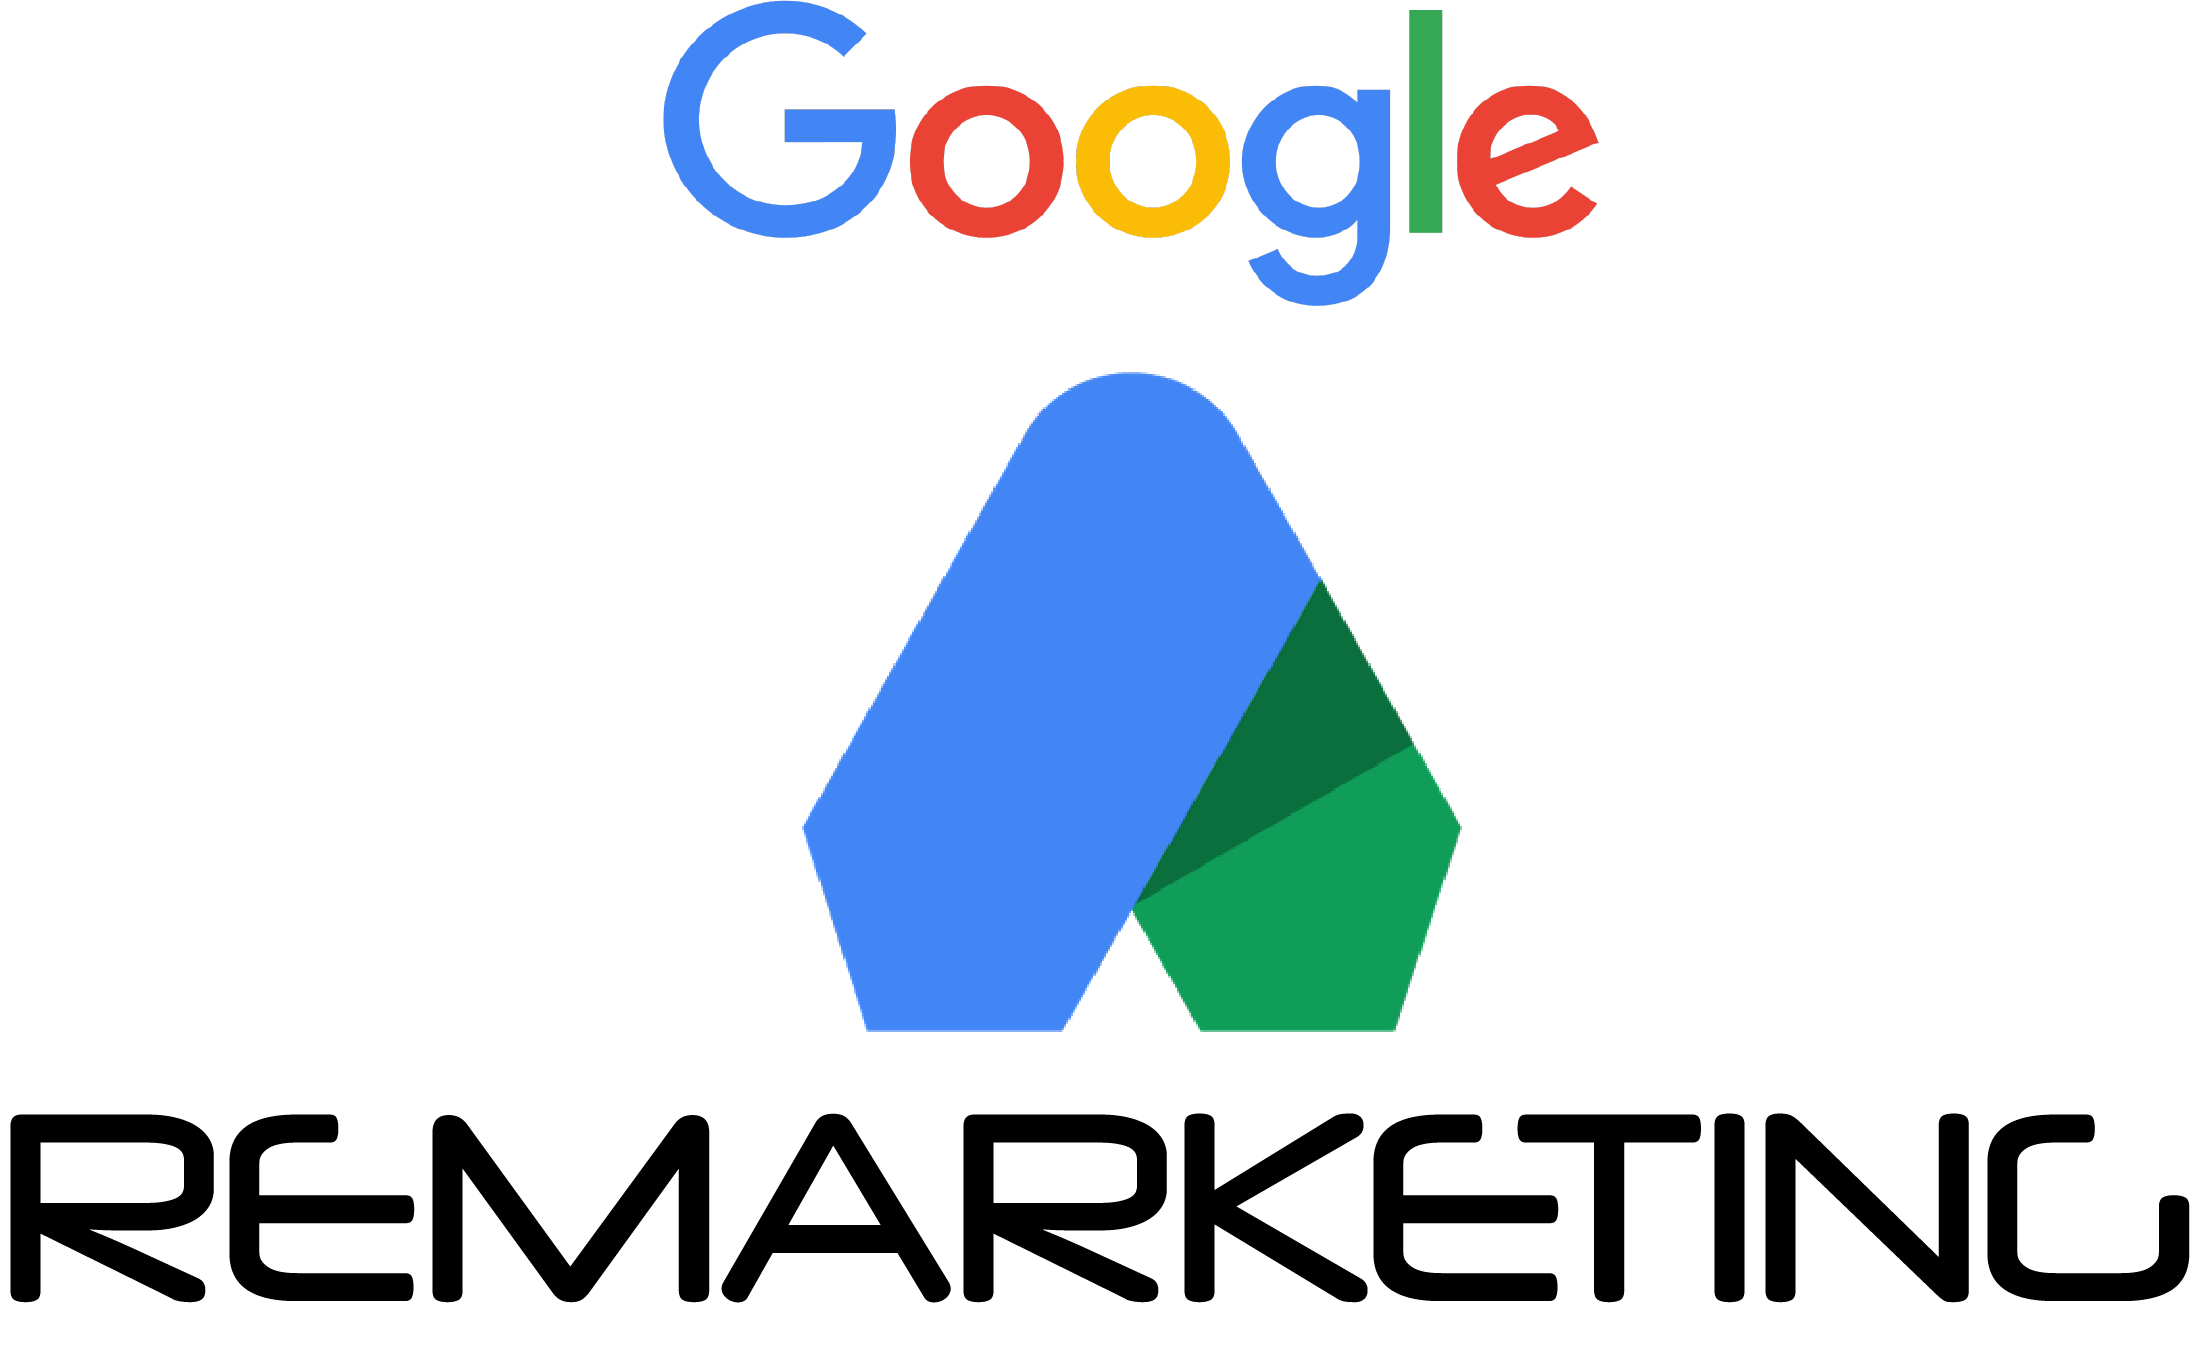 Google remarketing tag